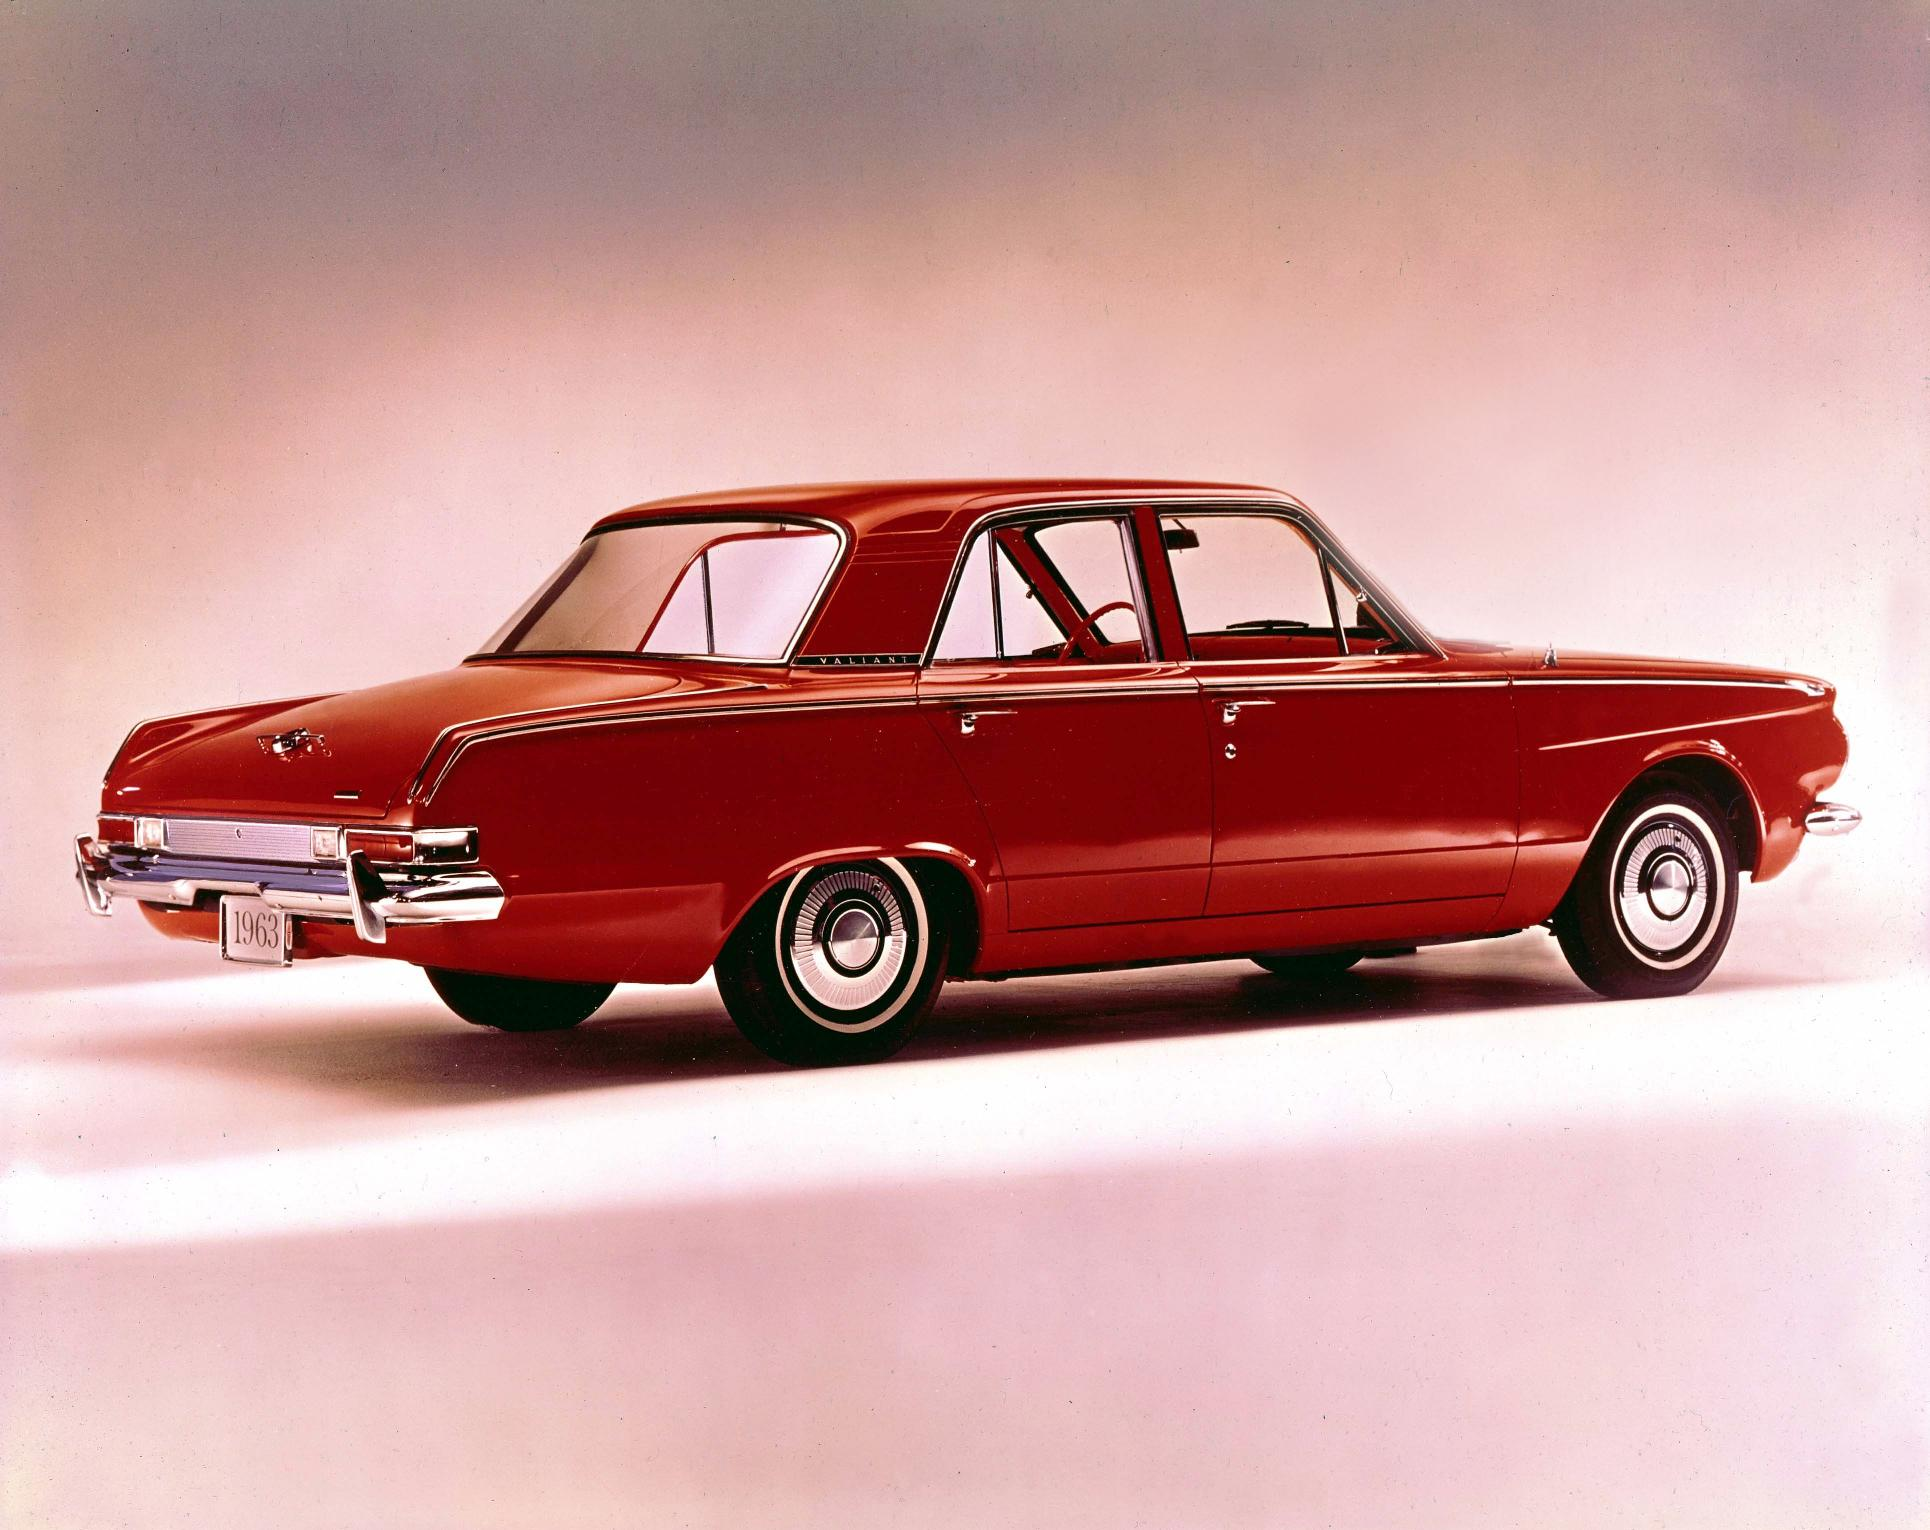 A rampaging truck hunts down the driver of a Plymouth Valiant in which movie?